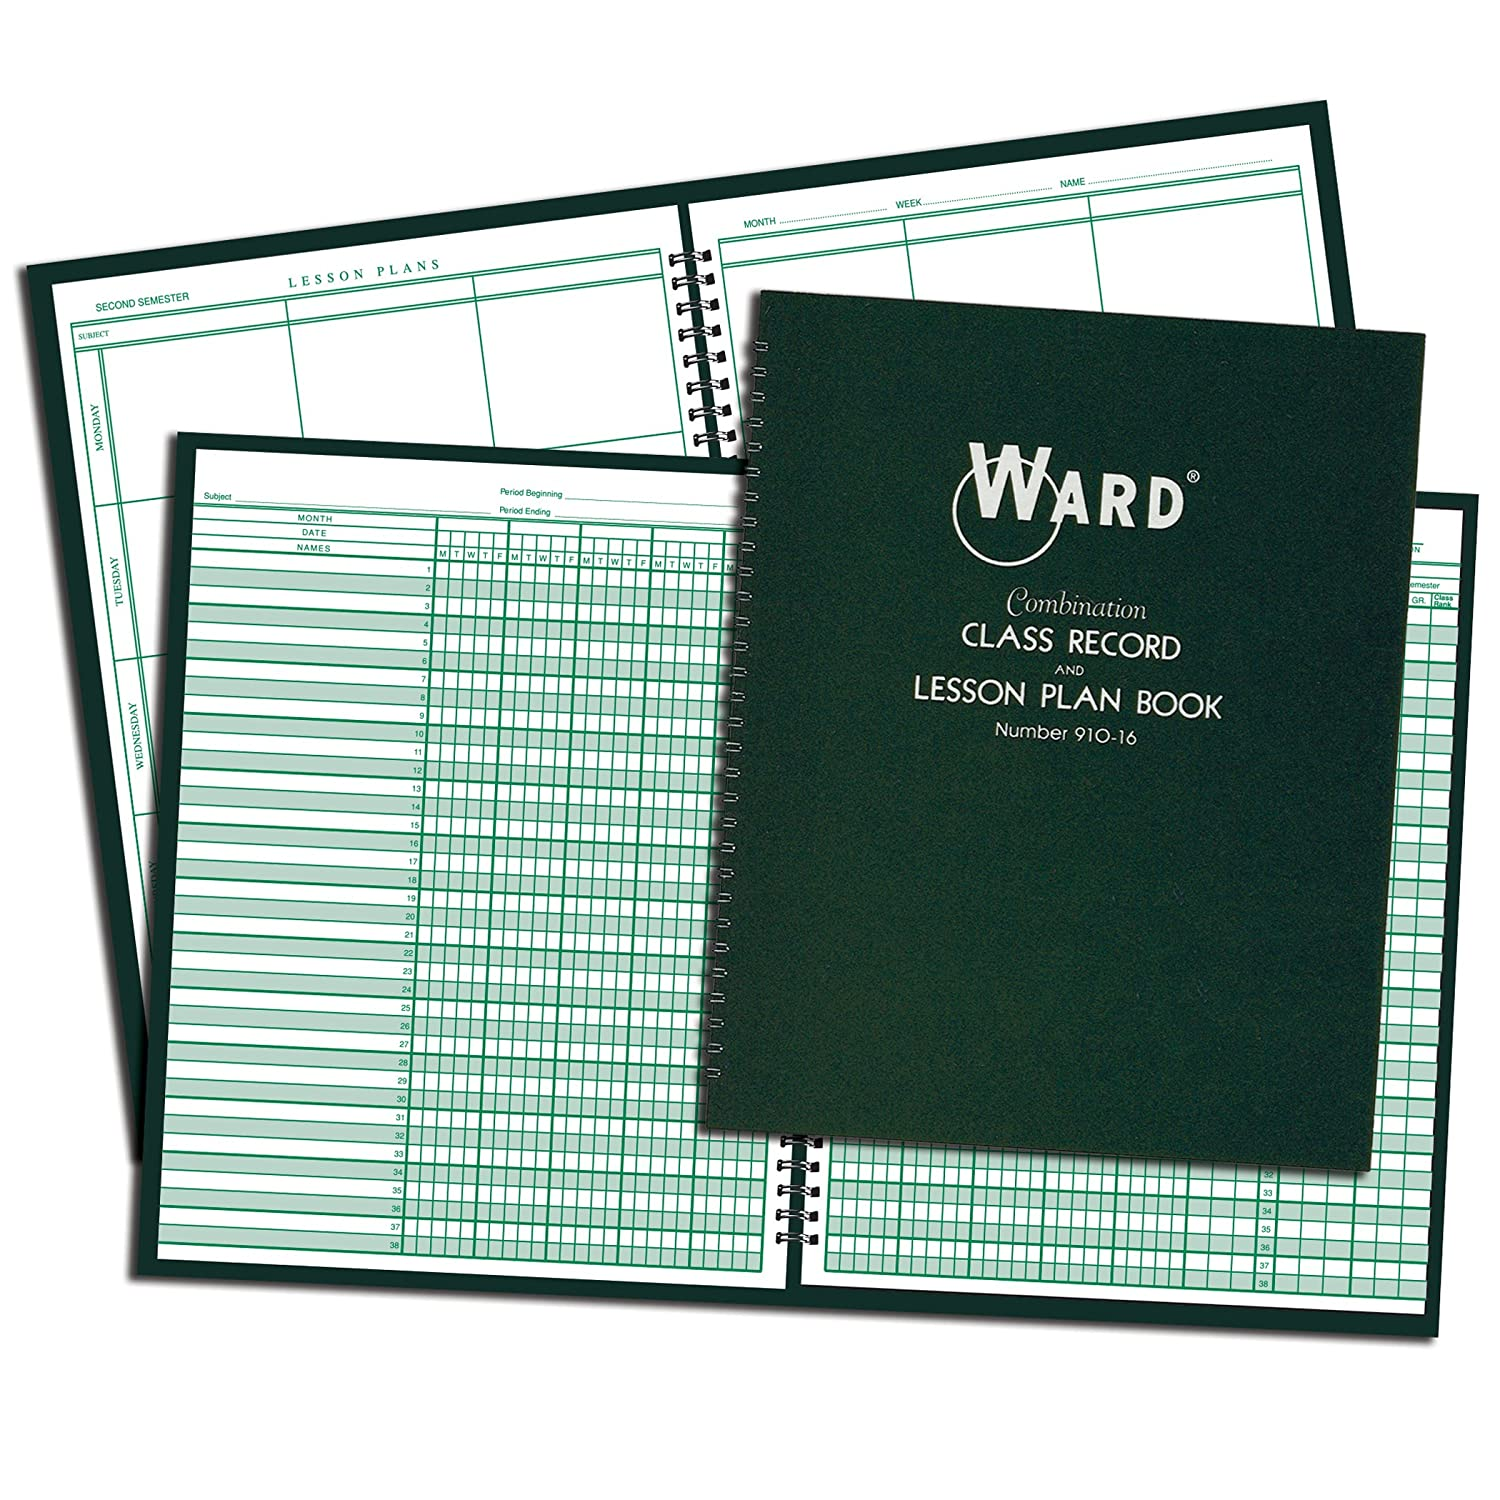 Ward Record and Plan Book Combination, 9-10 Weeks, 6 Periods/Day, 11